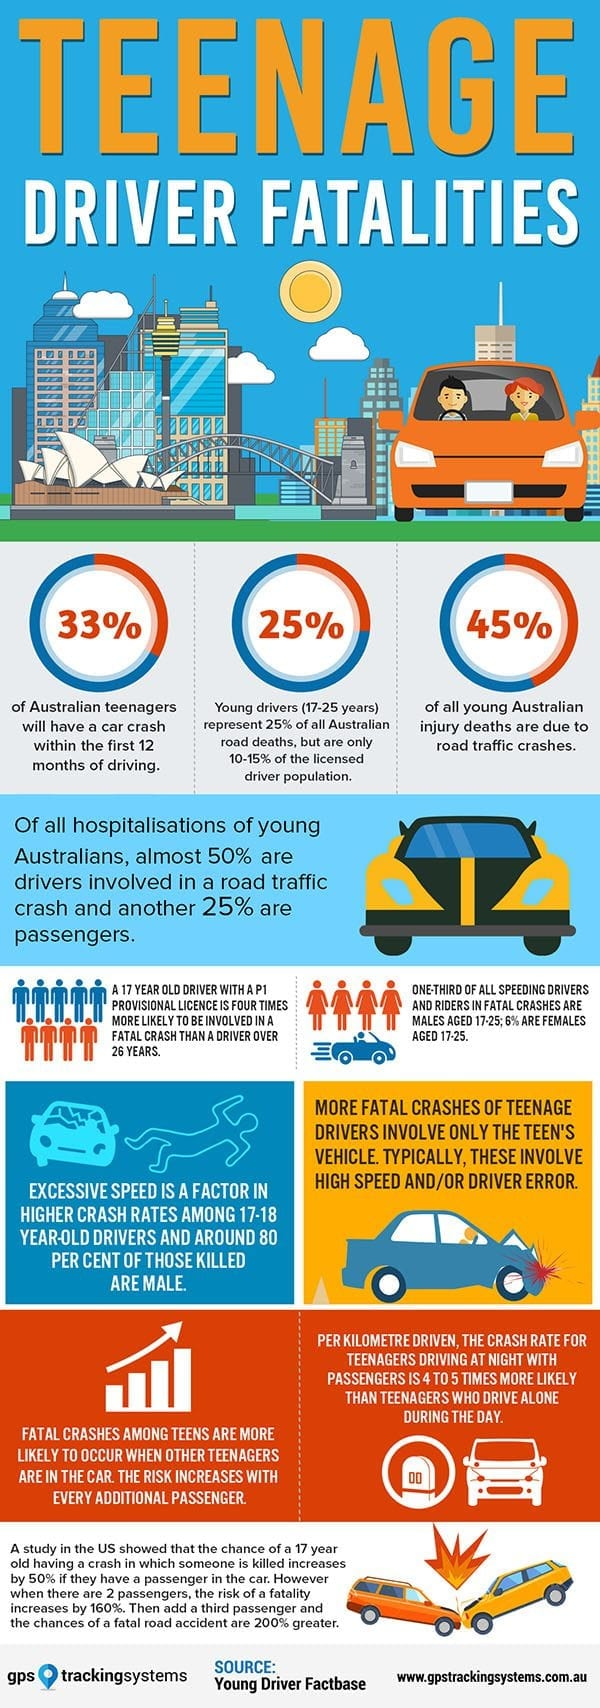 Teenage Driver Fatalities Infographic